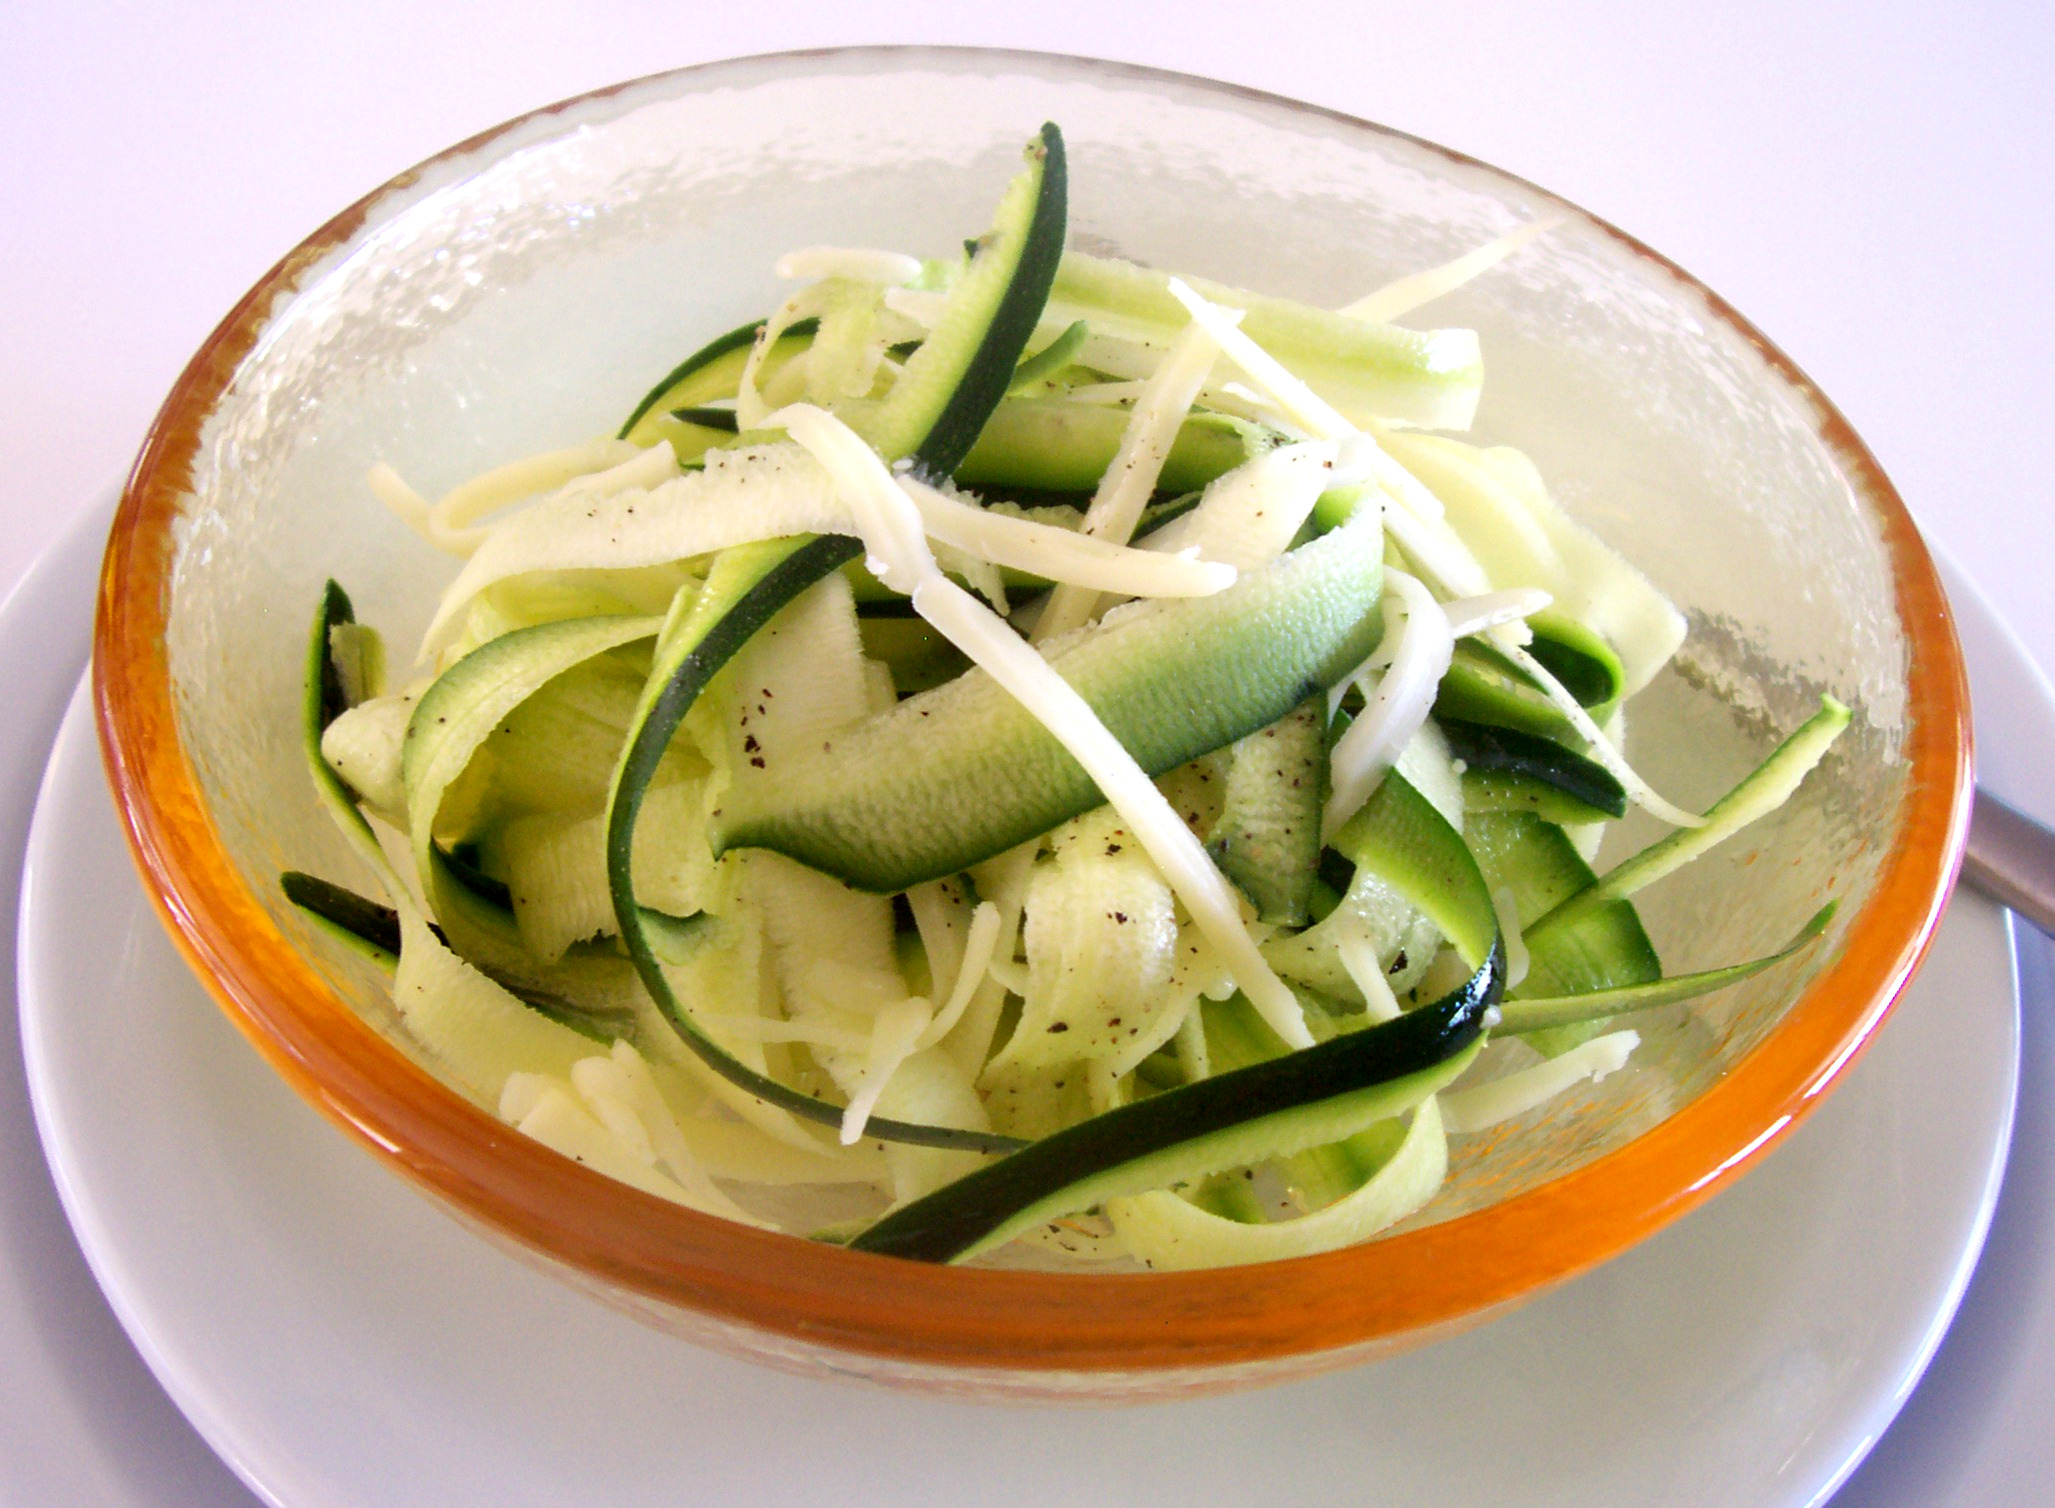 Zucchini and Pecorino Salad with Truffle Oil